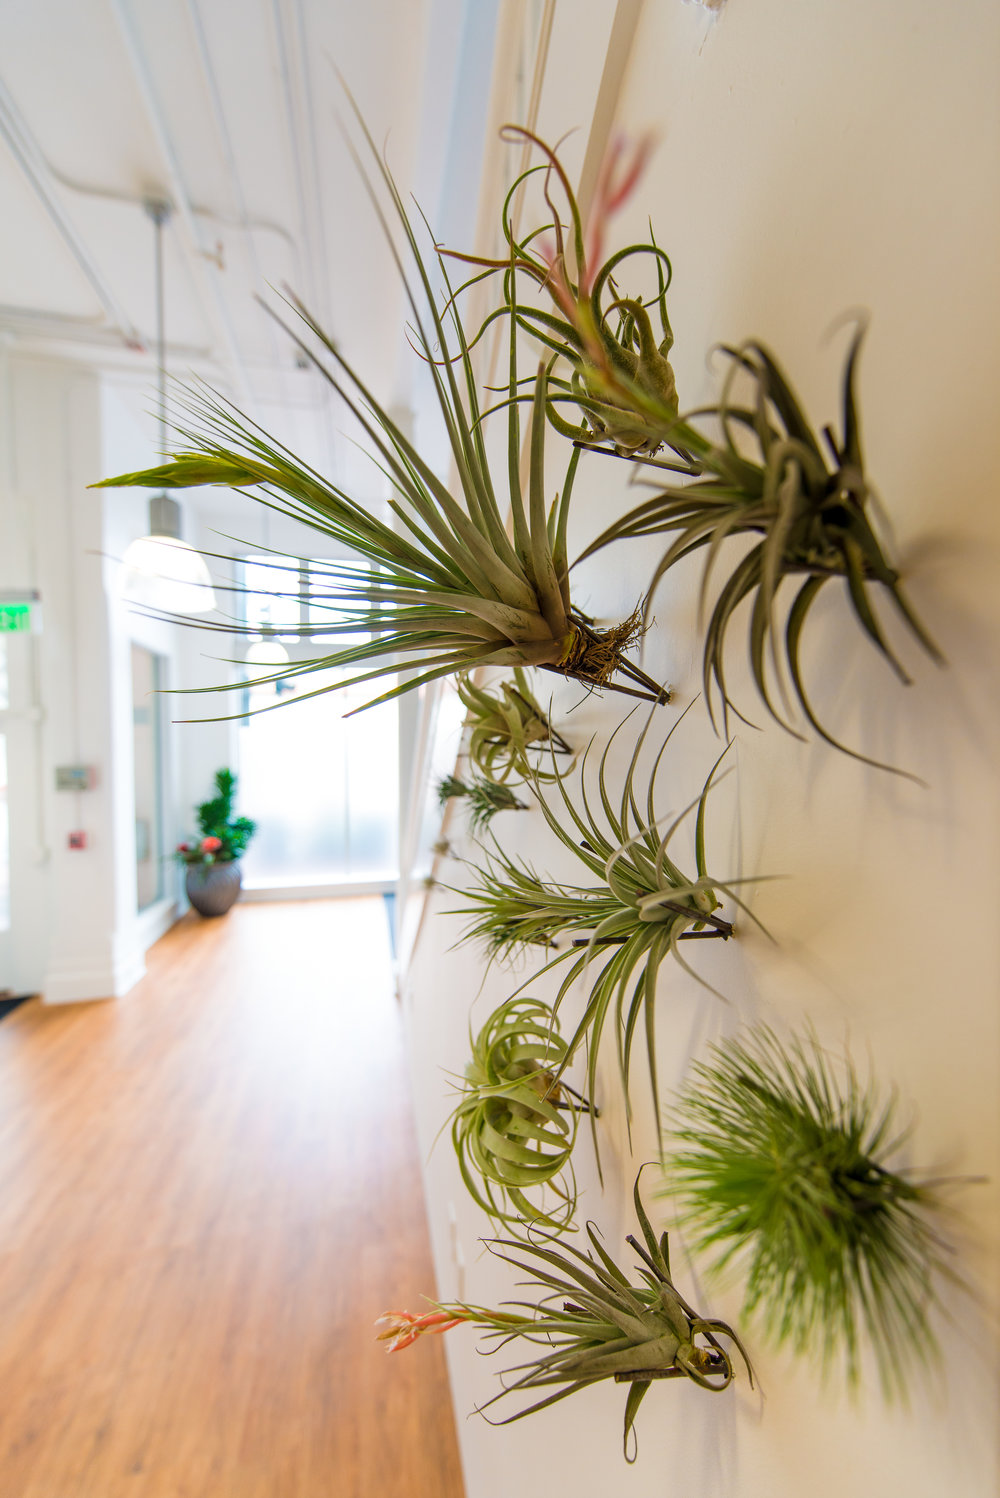 8_Tillandsia_on_wall_business_EL.jpg